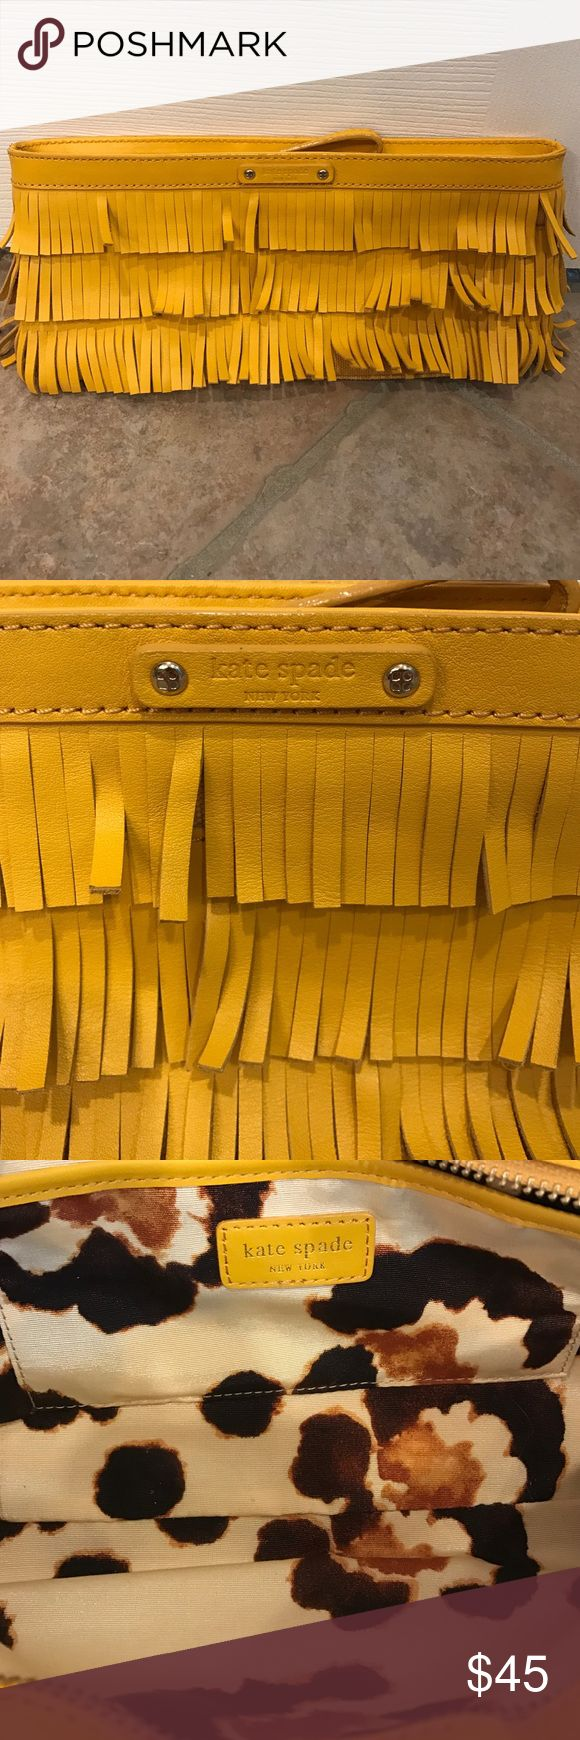 Kate Spade Mustard Fringe Clutch Excellent condition. Mustard leather fringe clutch with a wrist strap that can be used or tucked away. The inside is a fun leopardy print.   Measurements are as follows: 12x5.5x1.5 kate spade Bags Clutches & Wristlets